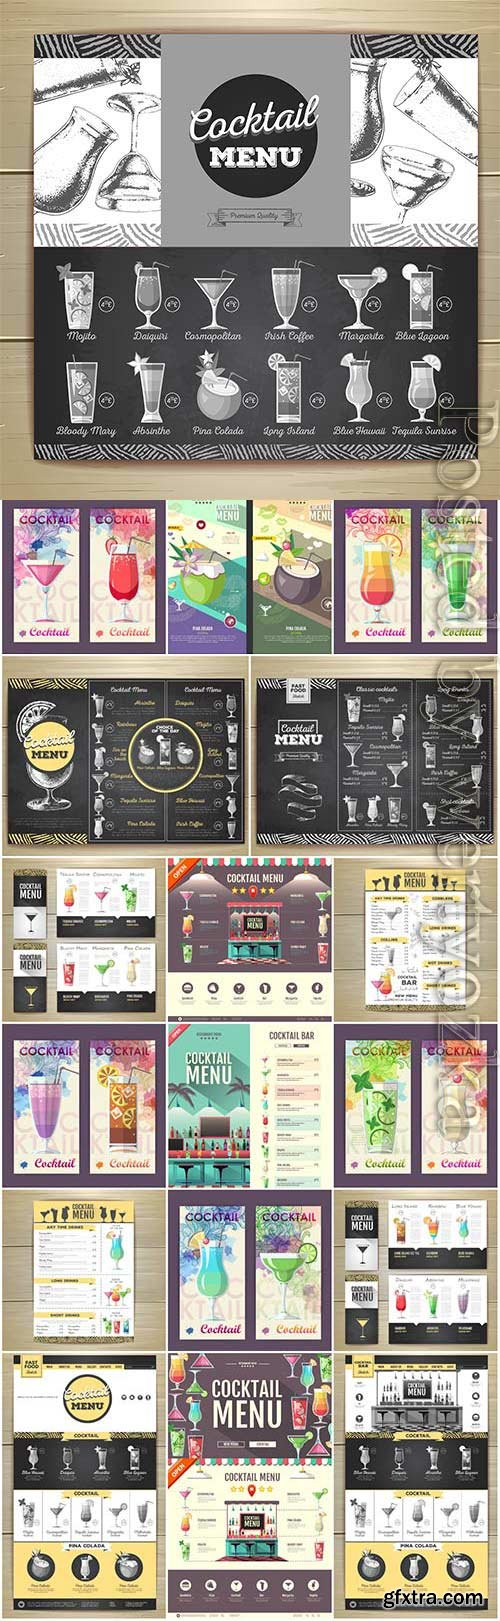 Cocktails menu for the bar in vector